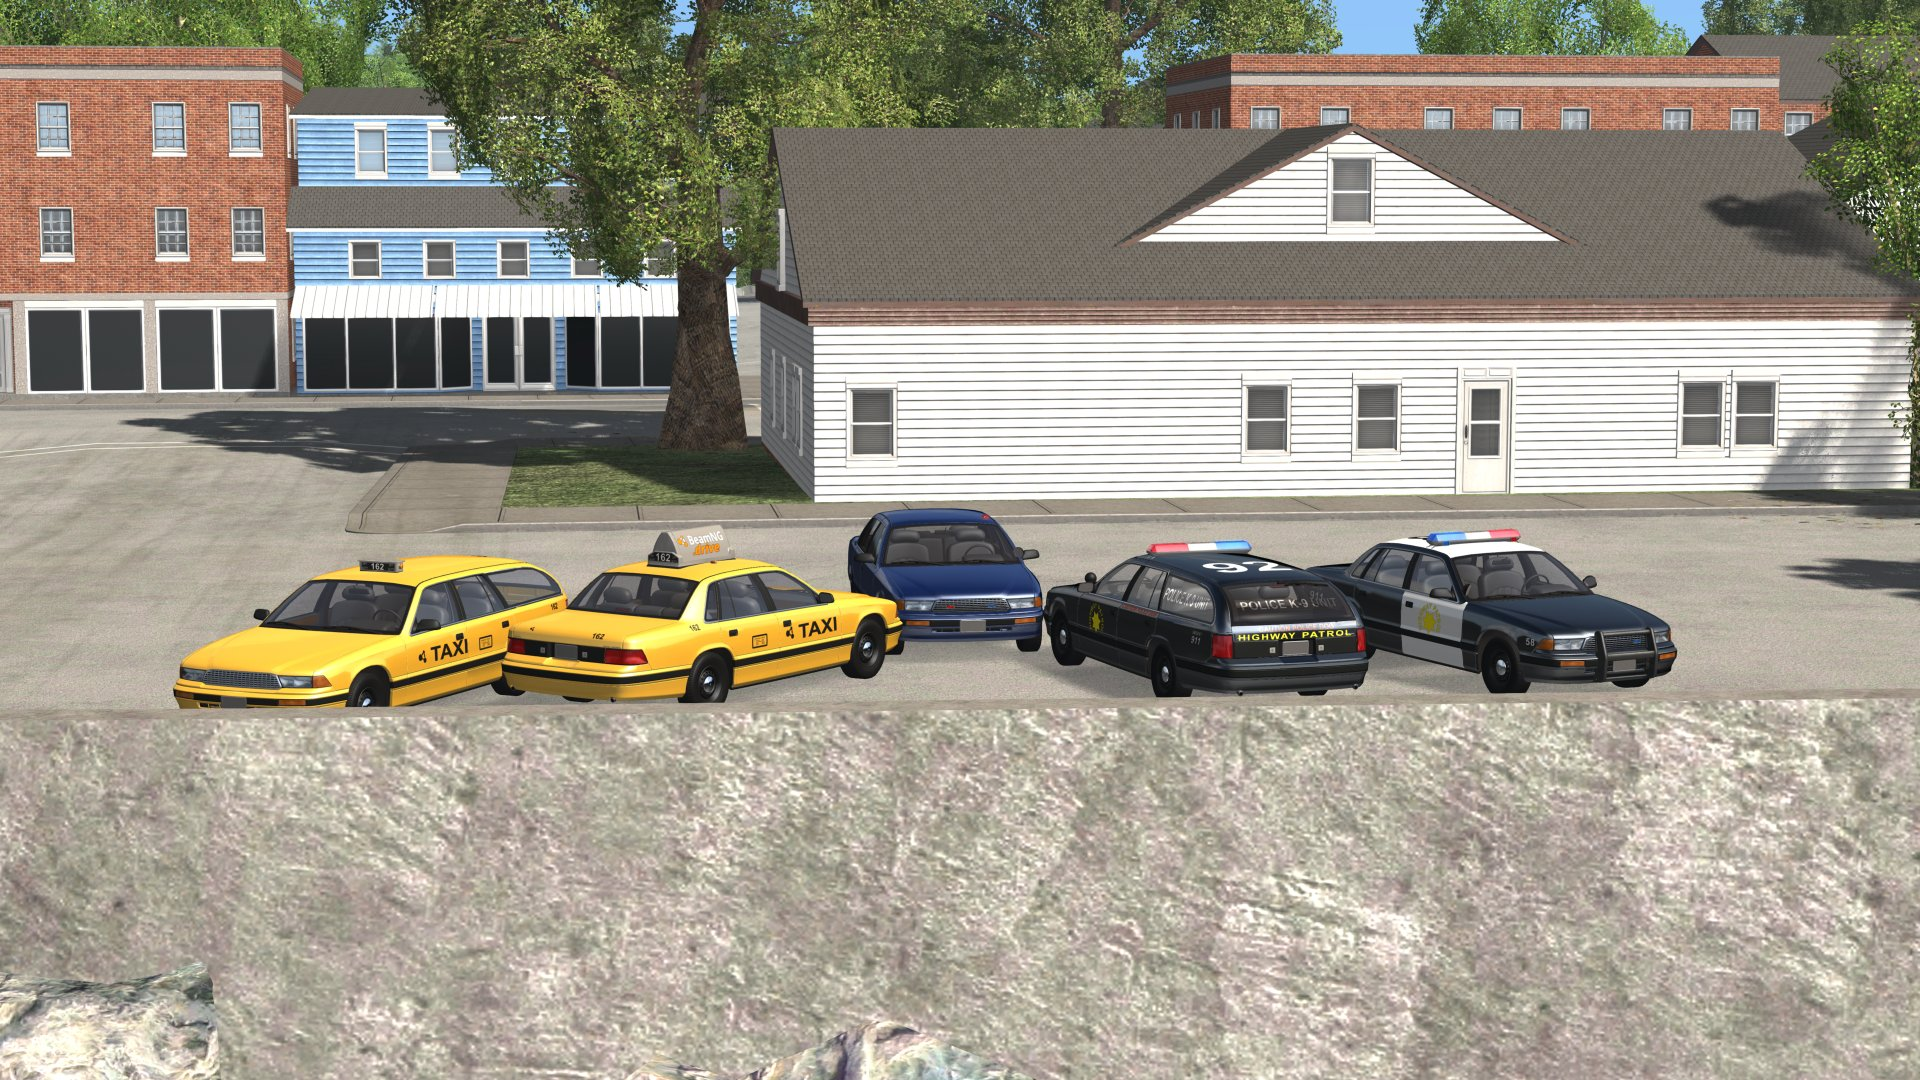 Outdated gavril grand marshal station wagon limousine police screenshot001681920g sciox Choice Image